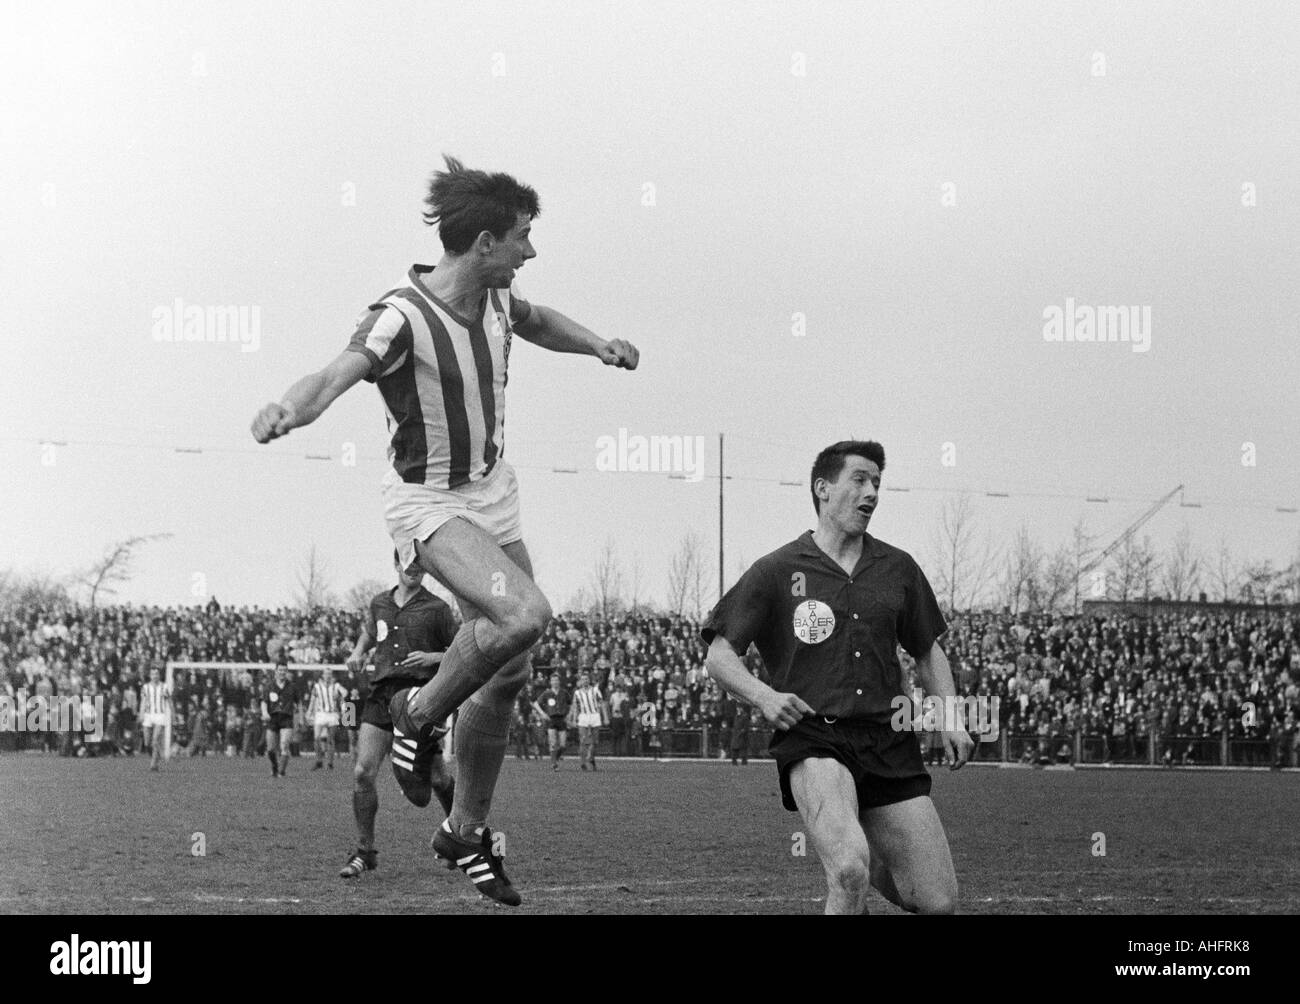 football, Regionalliga West, 1967/1968, Bayer Leverkusen versus Arminia Bielefeld 2:0, Ulrich Haberland Stadium in Leverkusen, scene of the match, header by Dietmar Erler (Bielefeld) left, right Willi Haag (Bayer) - Stock Image